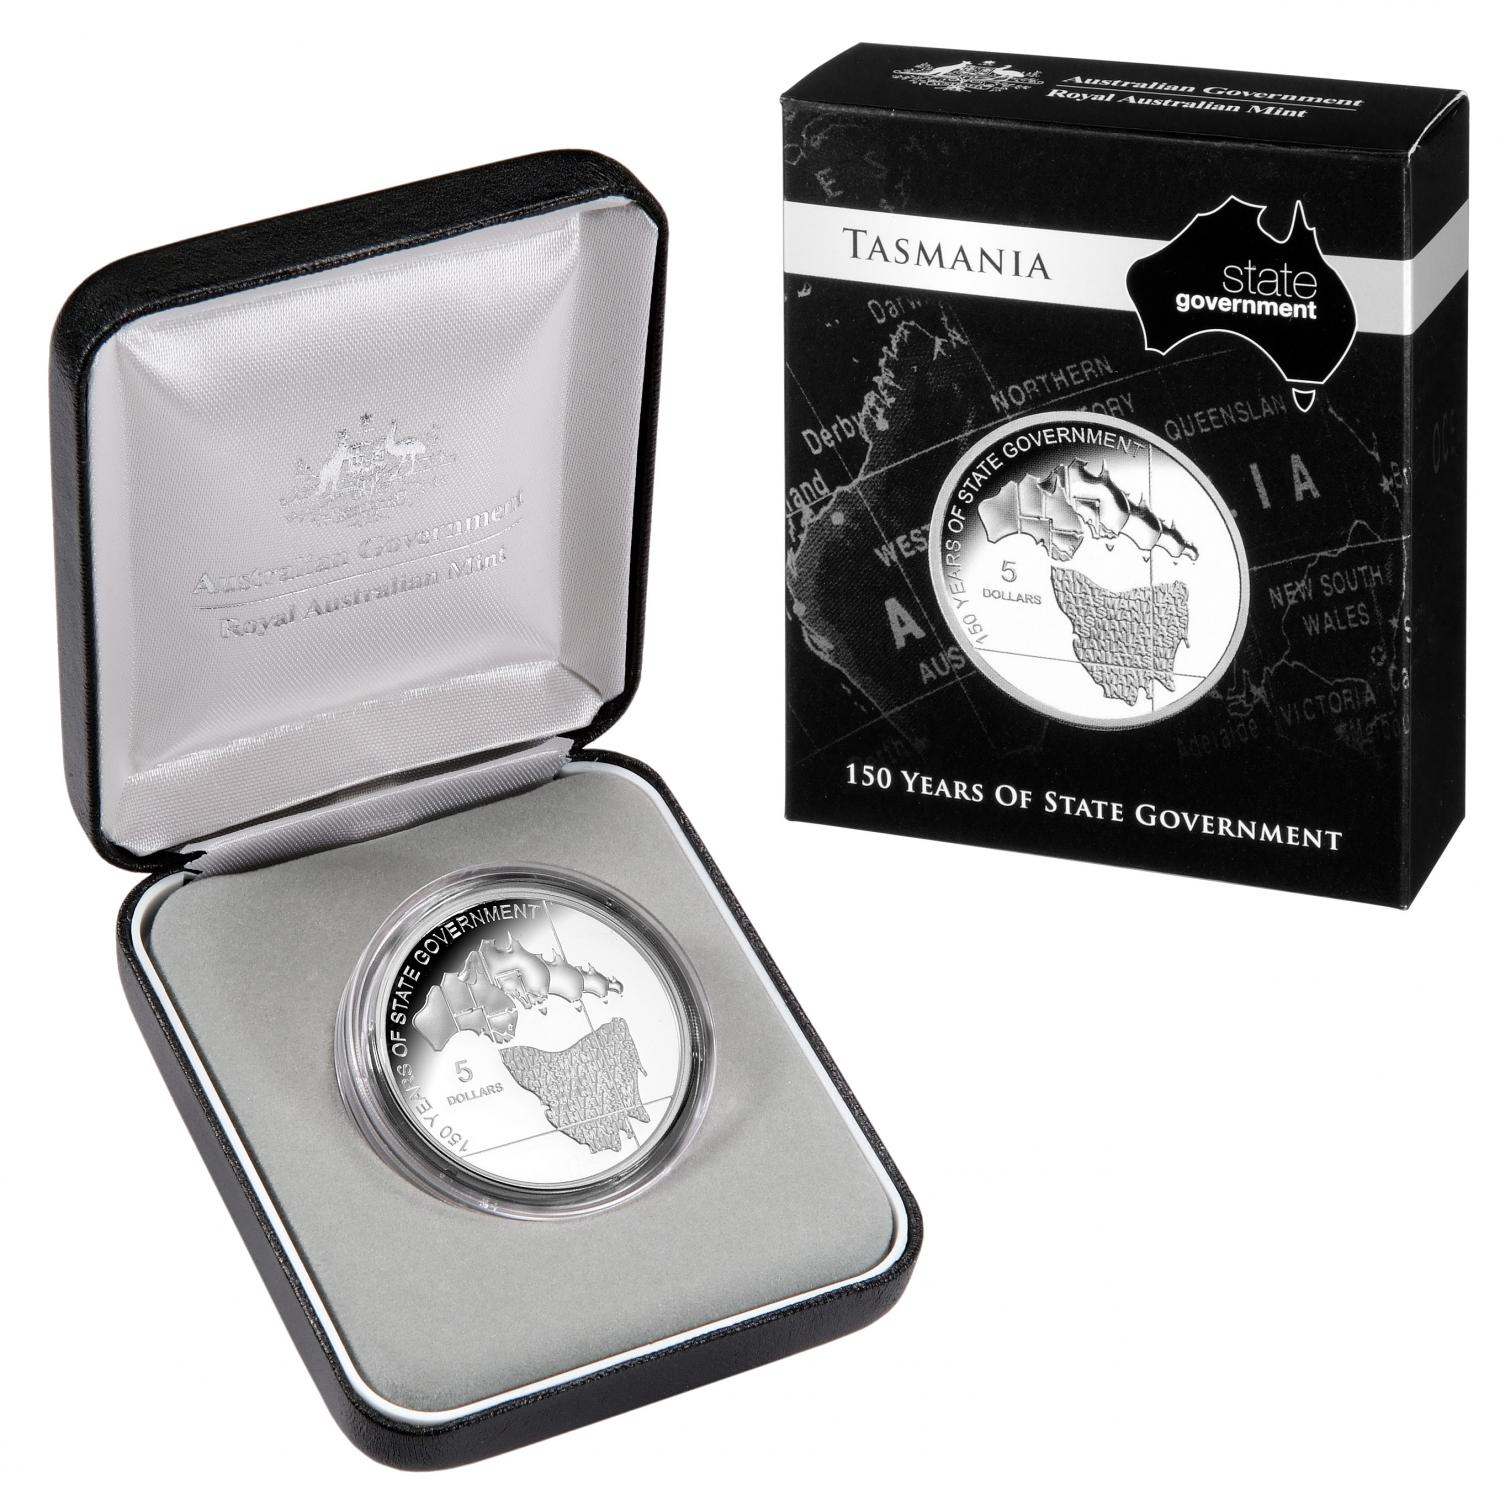 Thumbnail for 2006 $5.00 Silver Proof Tasmania 150 Years of State Government